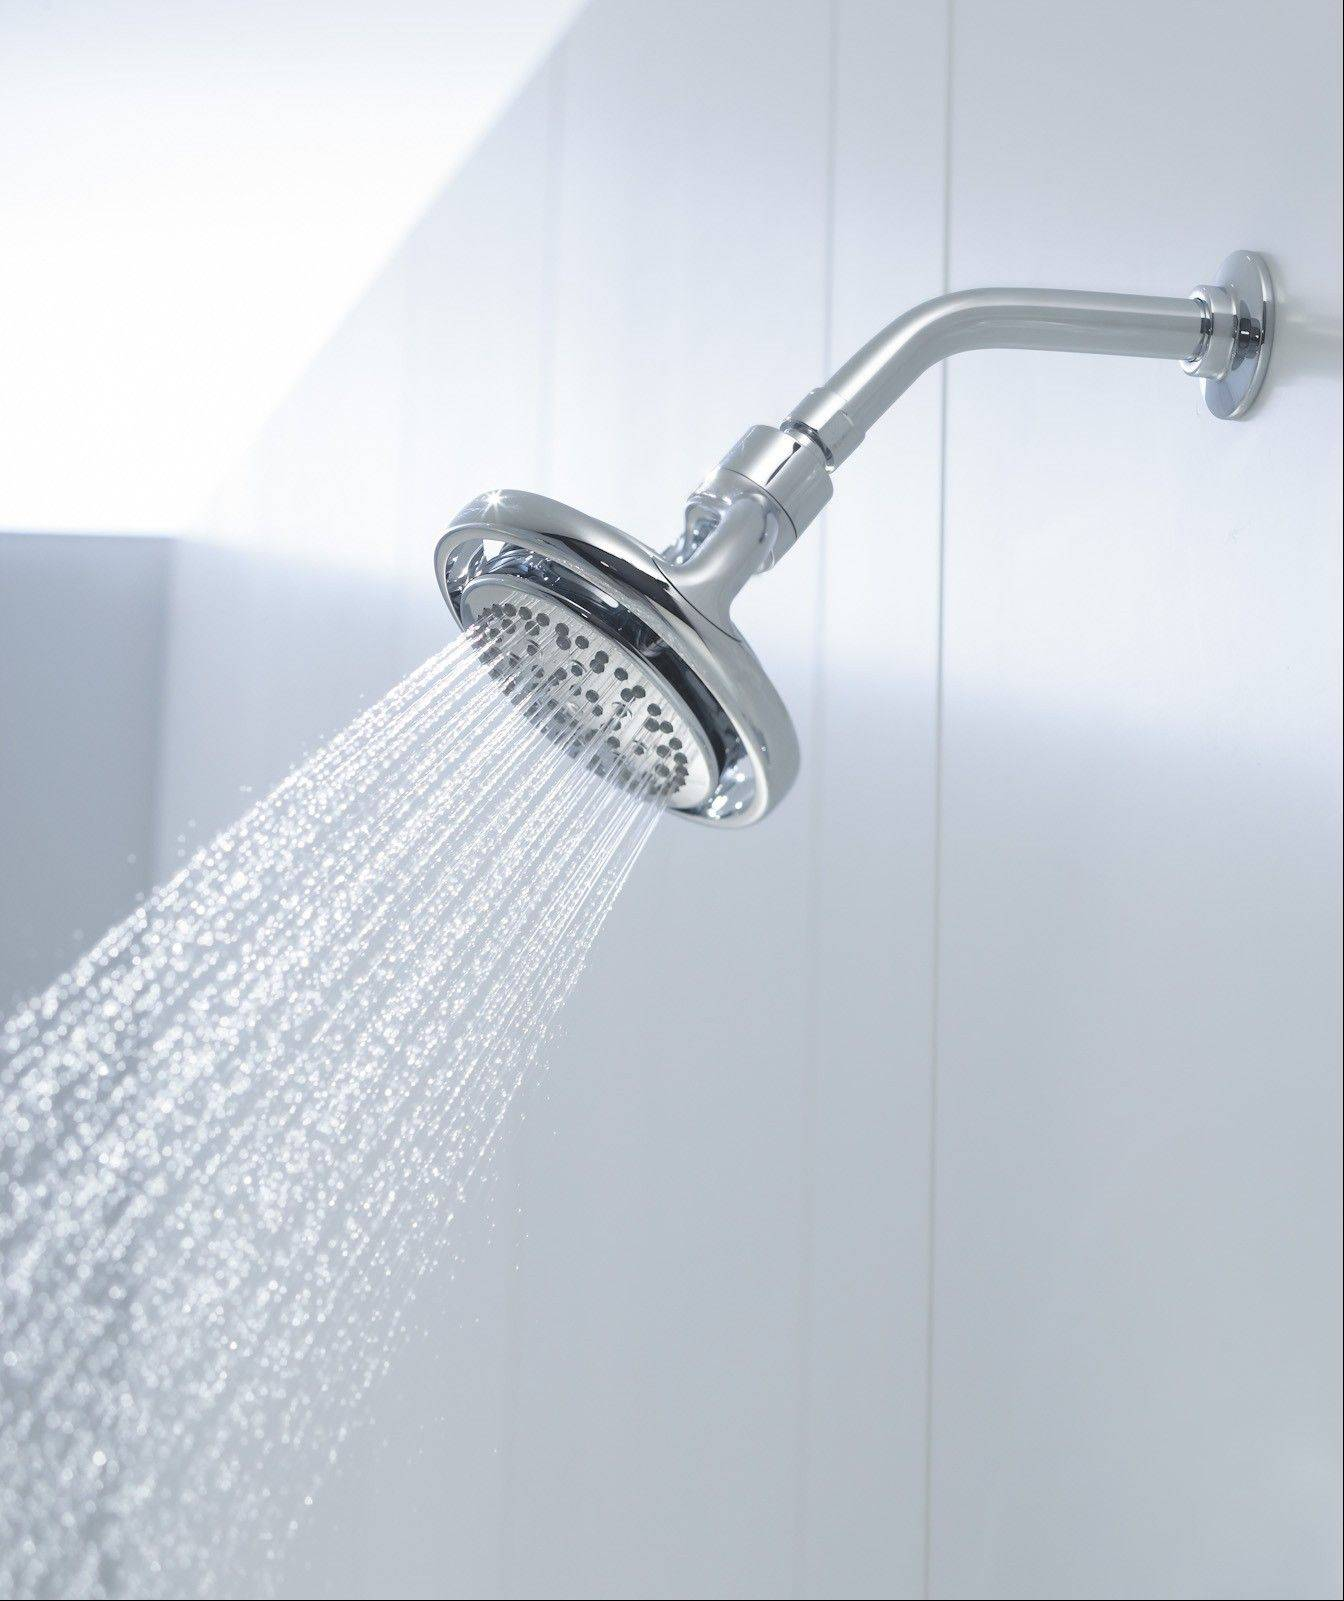 Recirculating pumps get hot water to your shower fast, but add to electric bills.